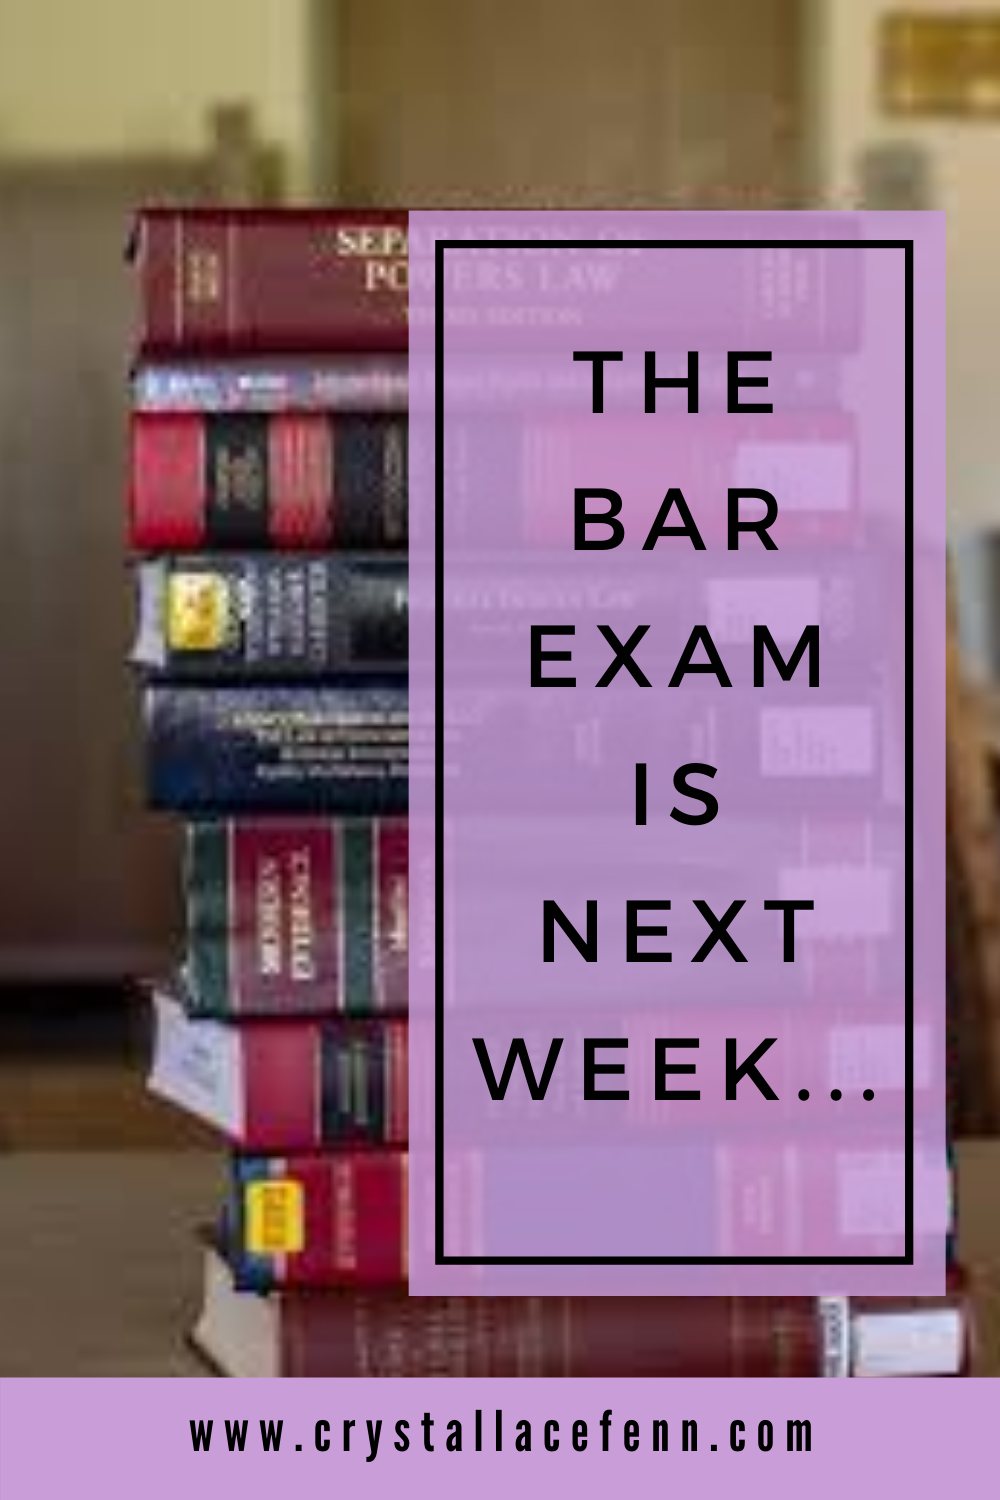 3 Thoughts You Should Be Thinking When The Bar Exam is Next Week…